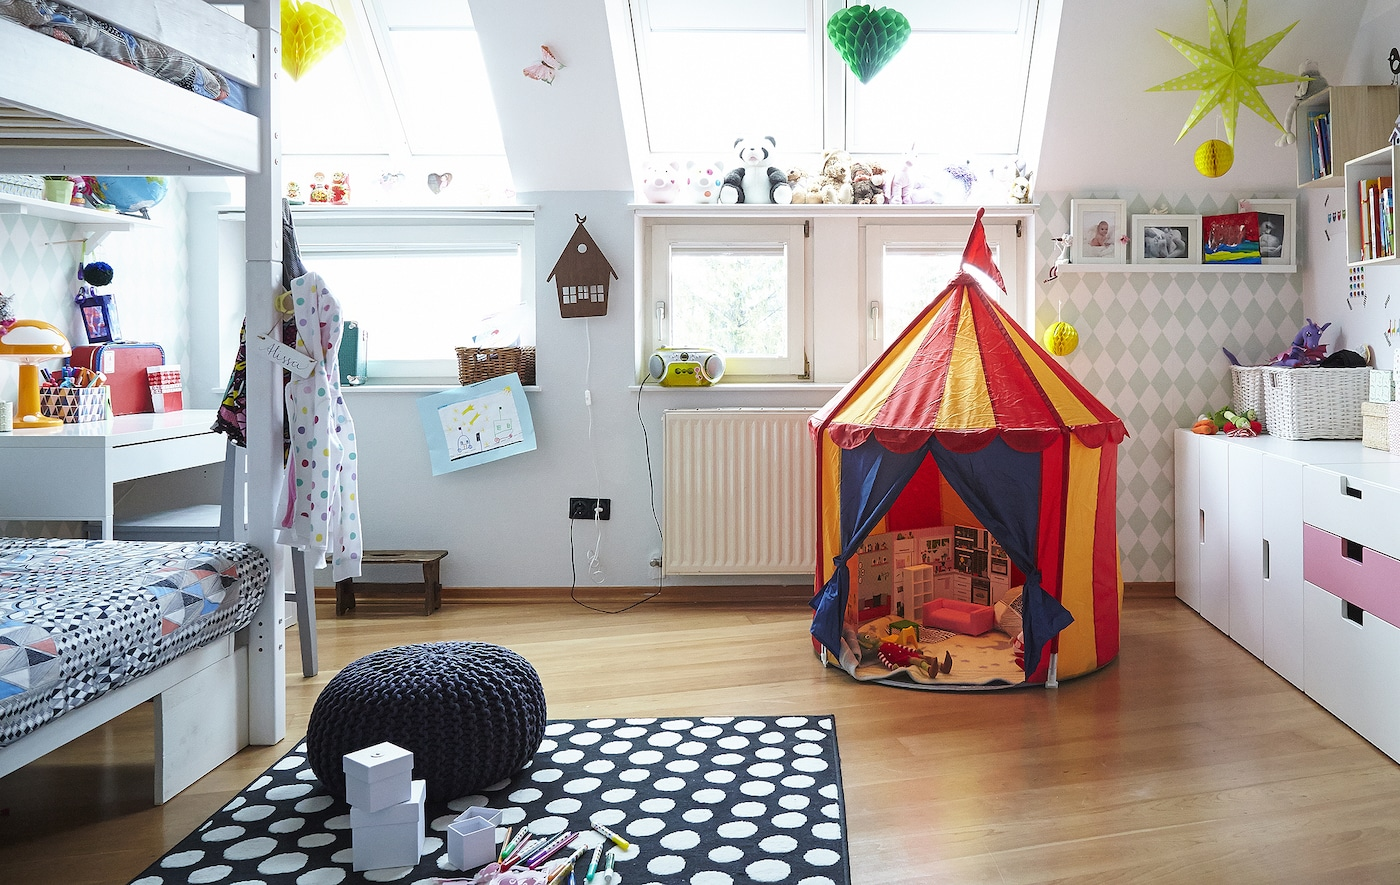 Adding a rug to a kid's bedroom creates a comfy space to play.